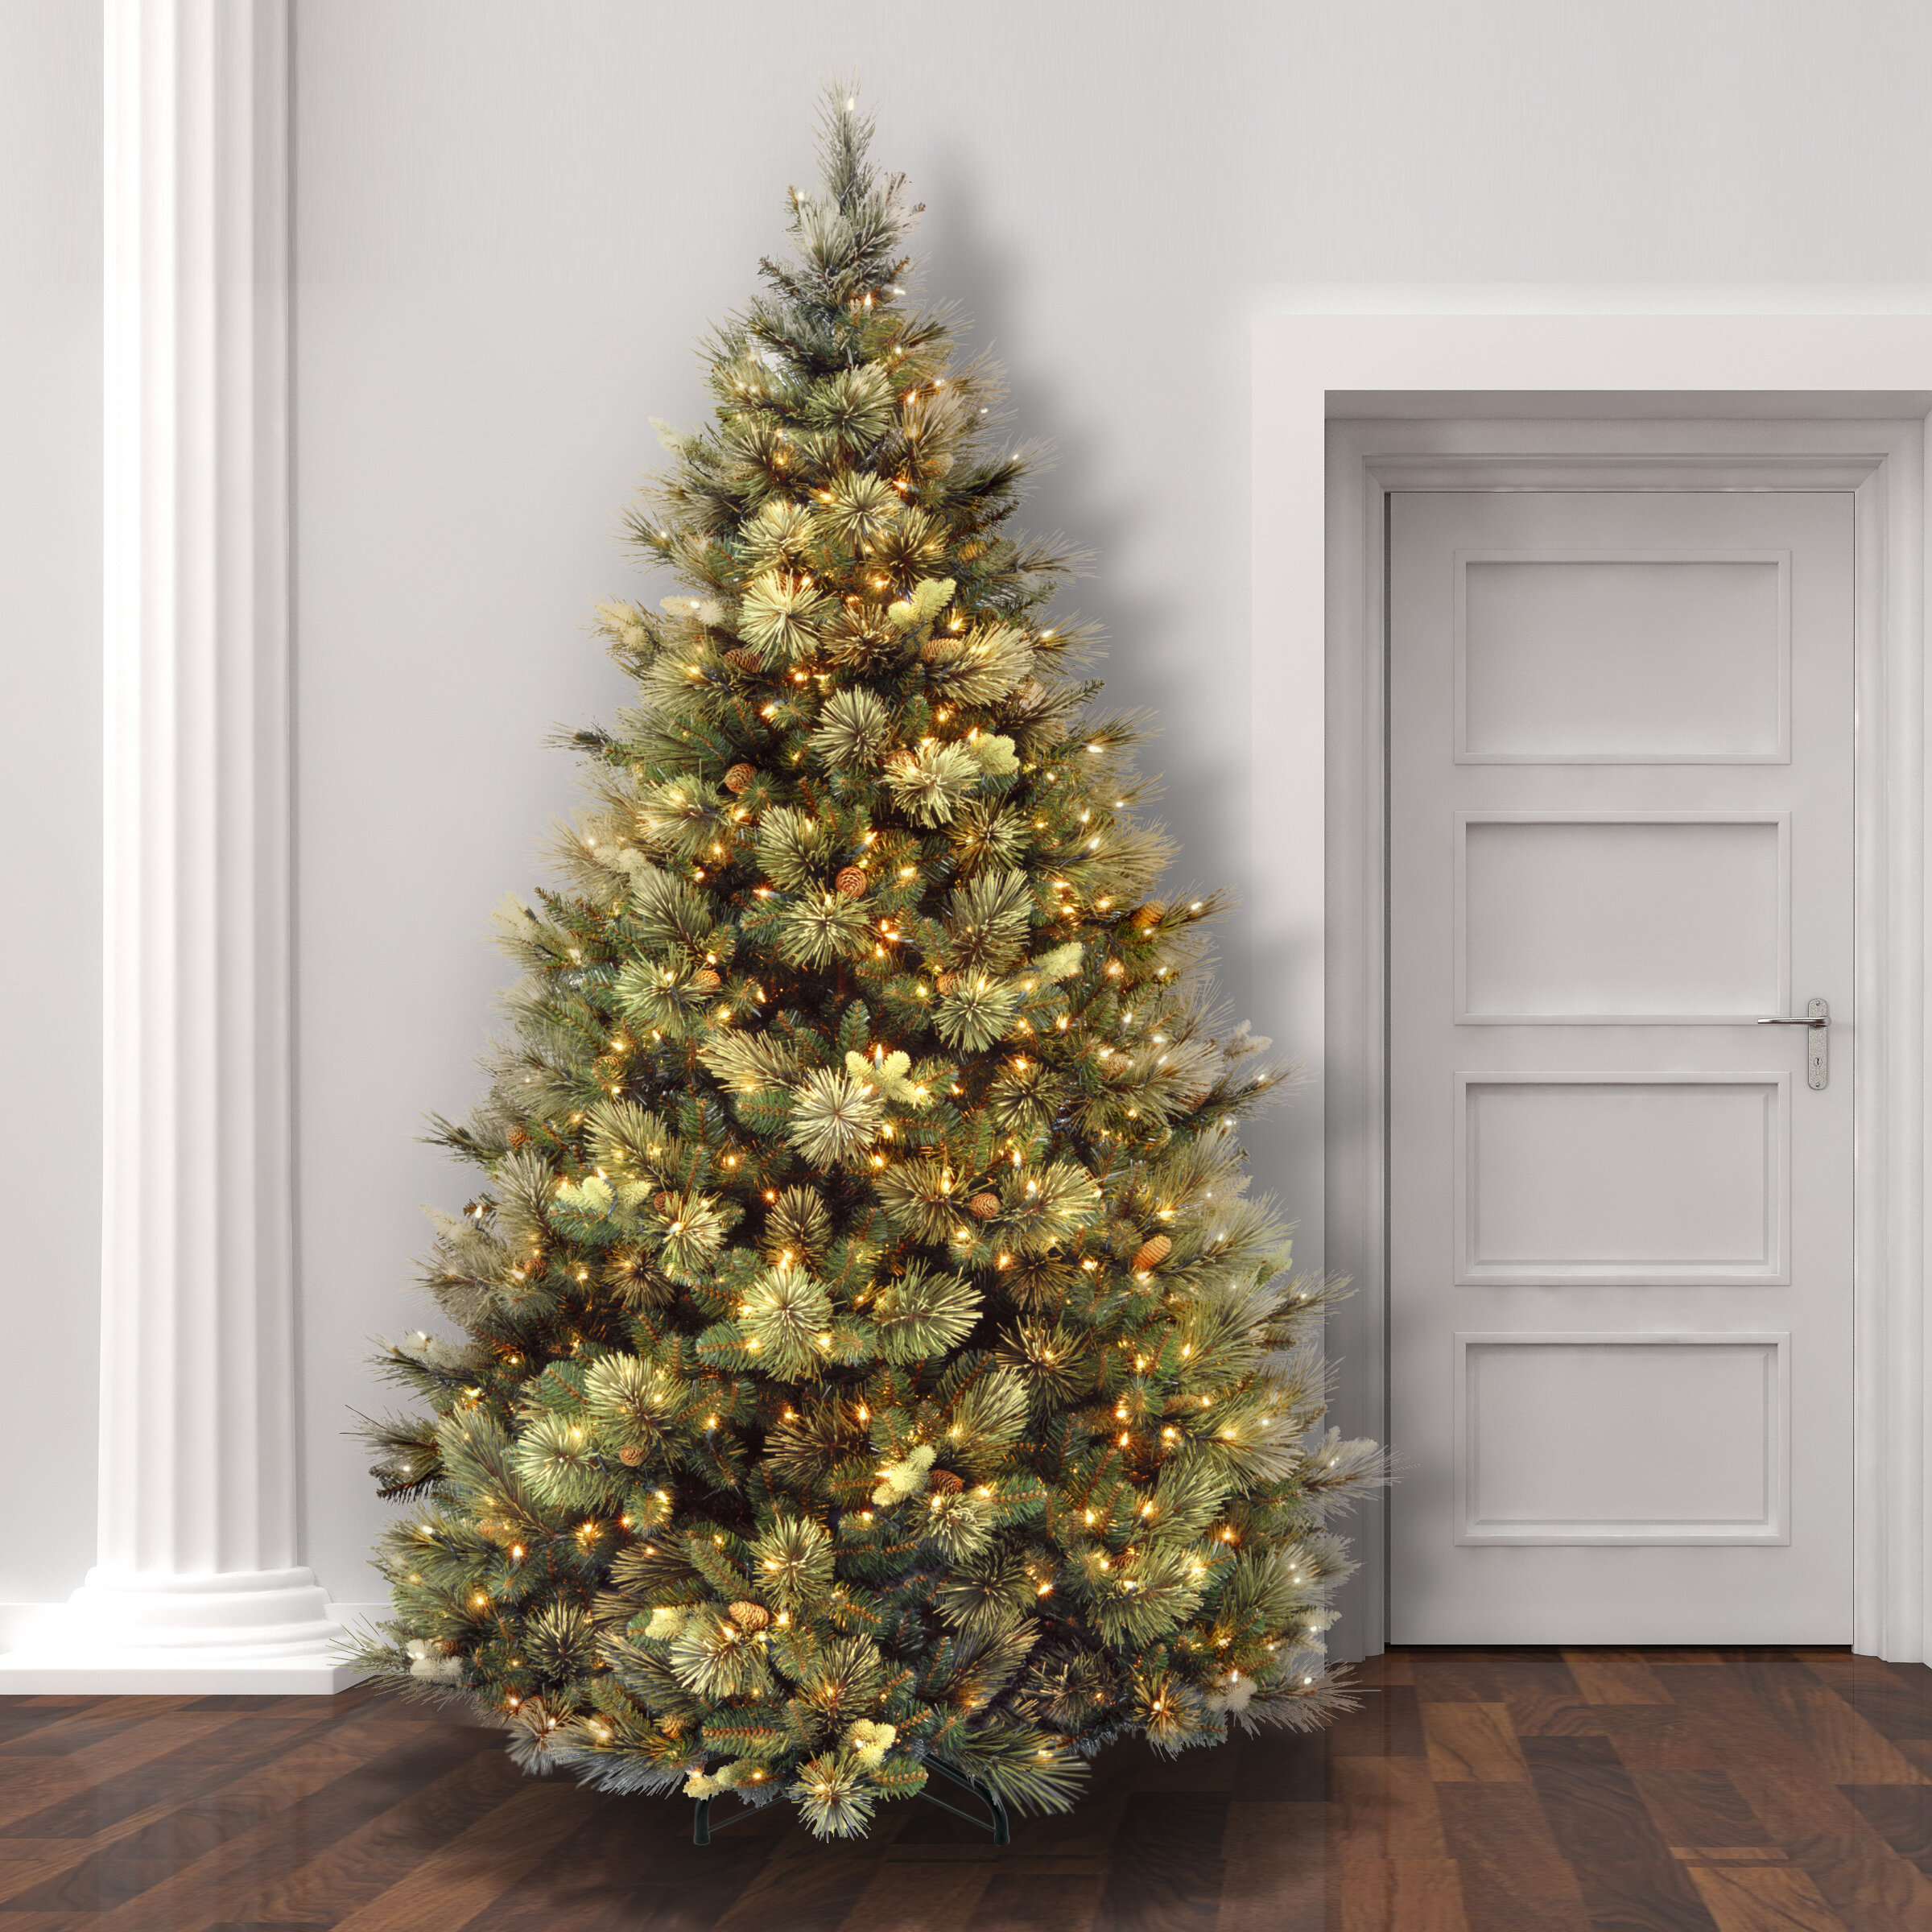 Laurel Foundry Modern Farmhouse Green Pine Artificial Christmas Tree With 650 Clear White Lights Reviews Wayfair